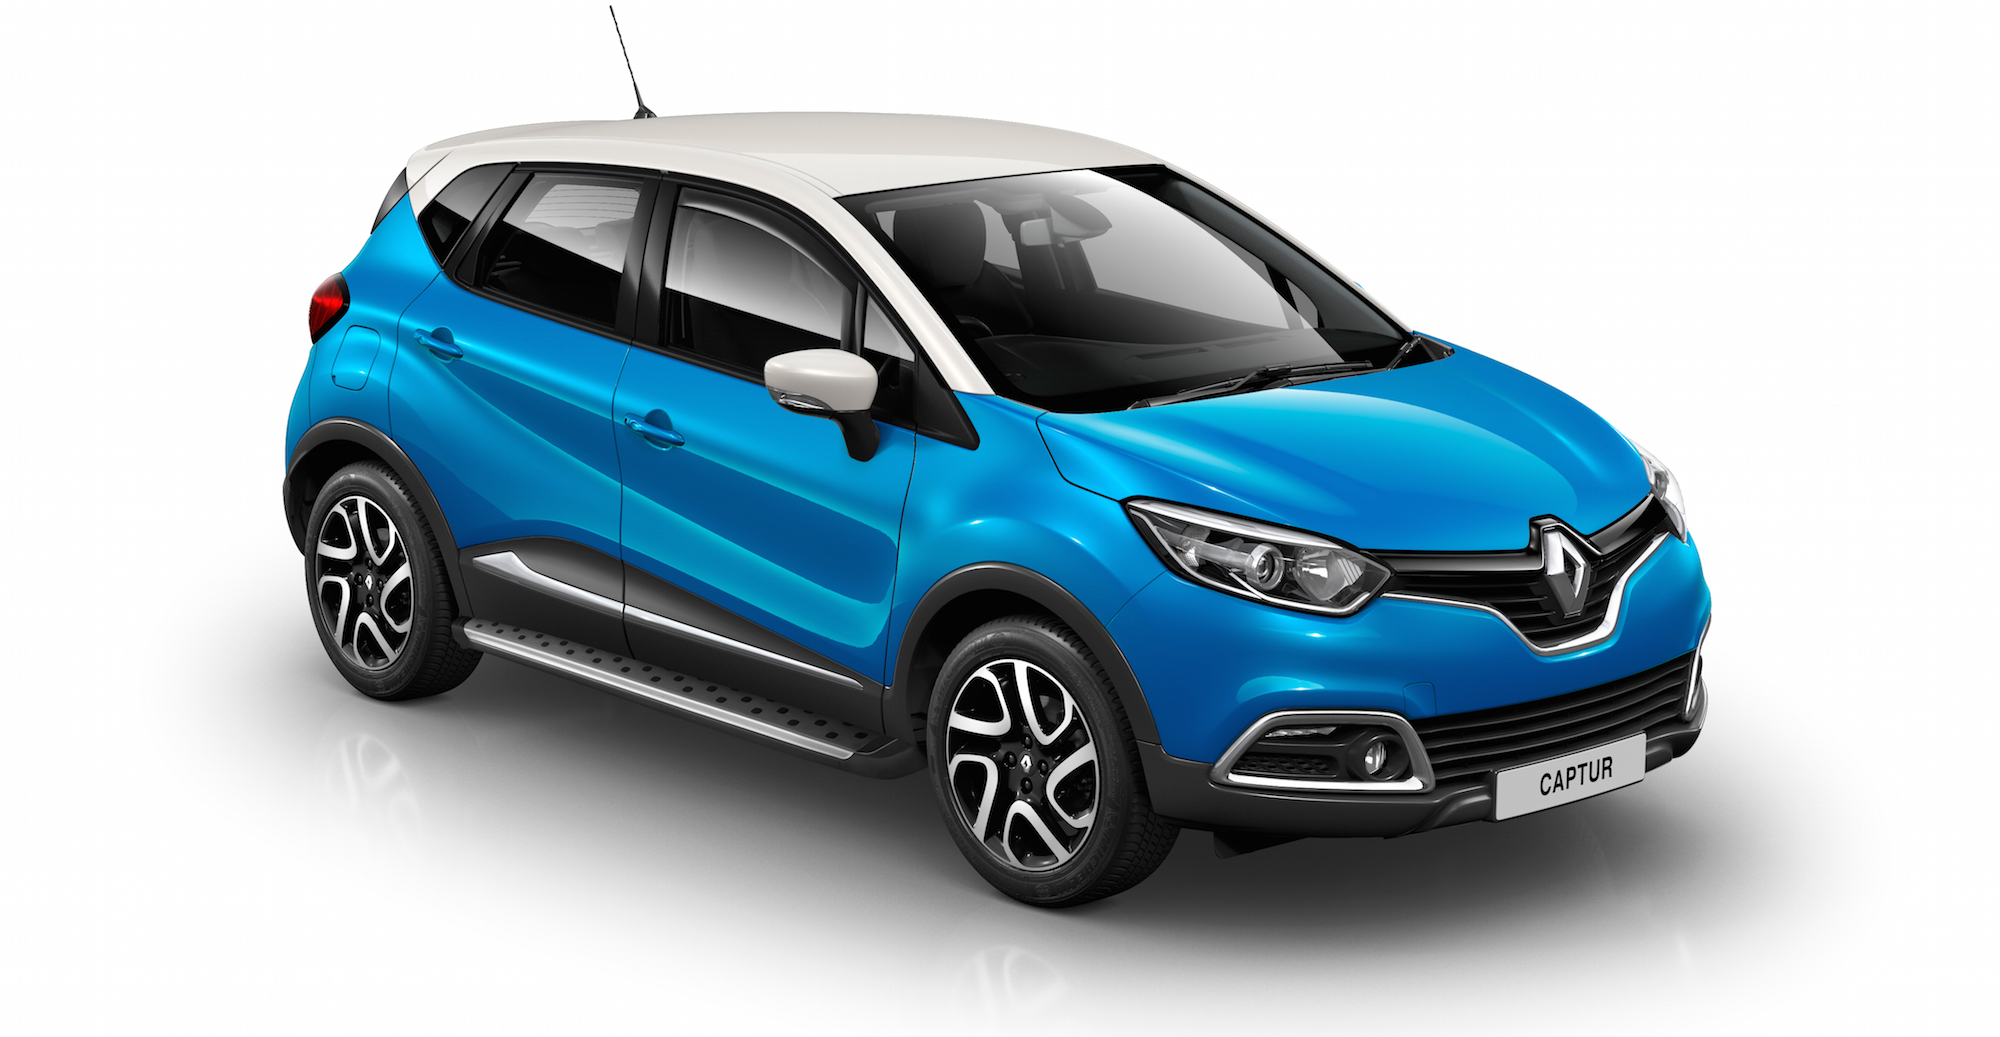 Renault clio and captur expression limited editions for Renault captur grigia